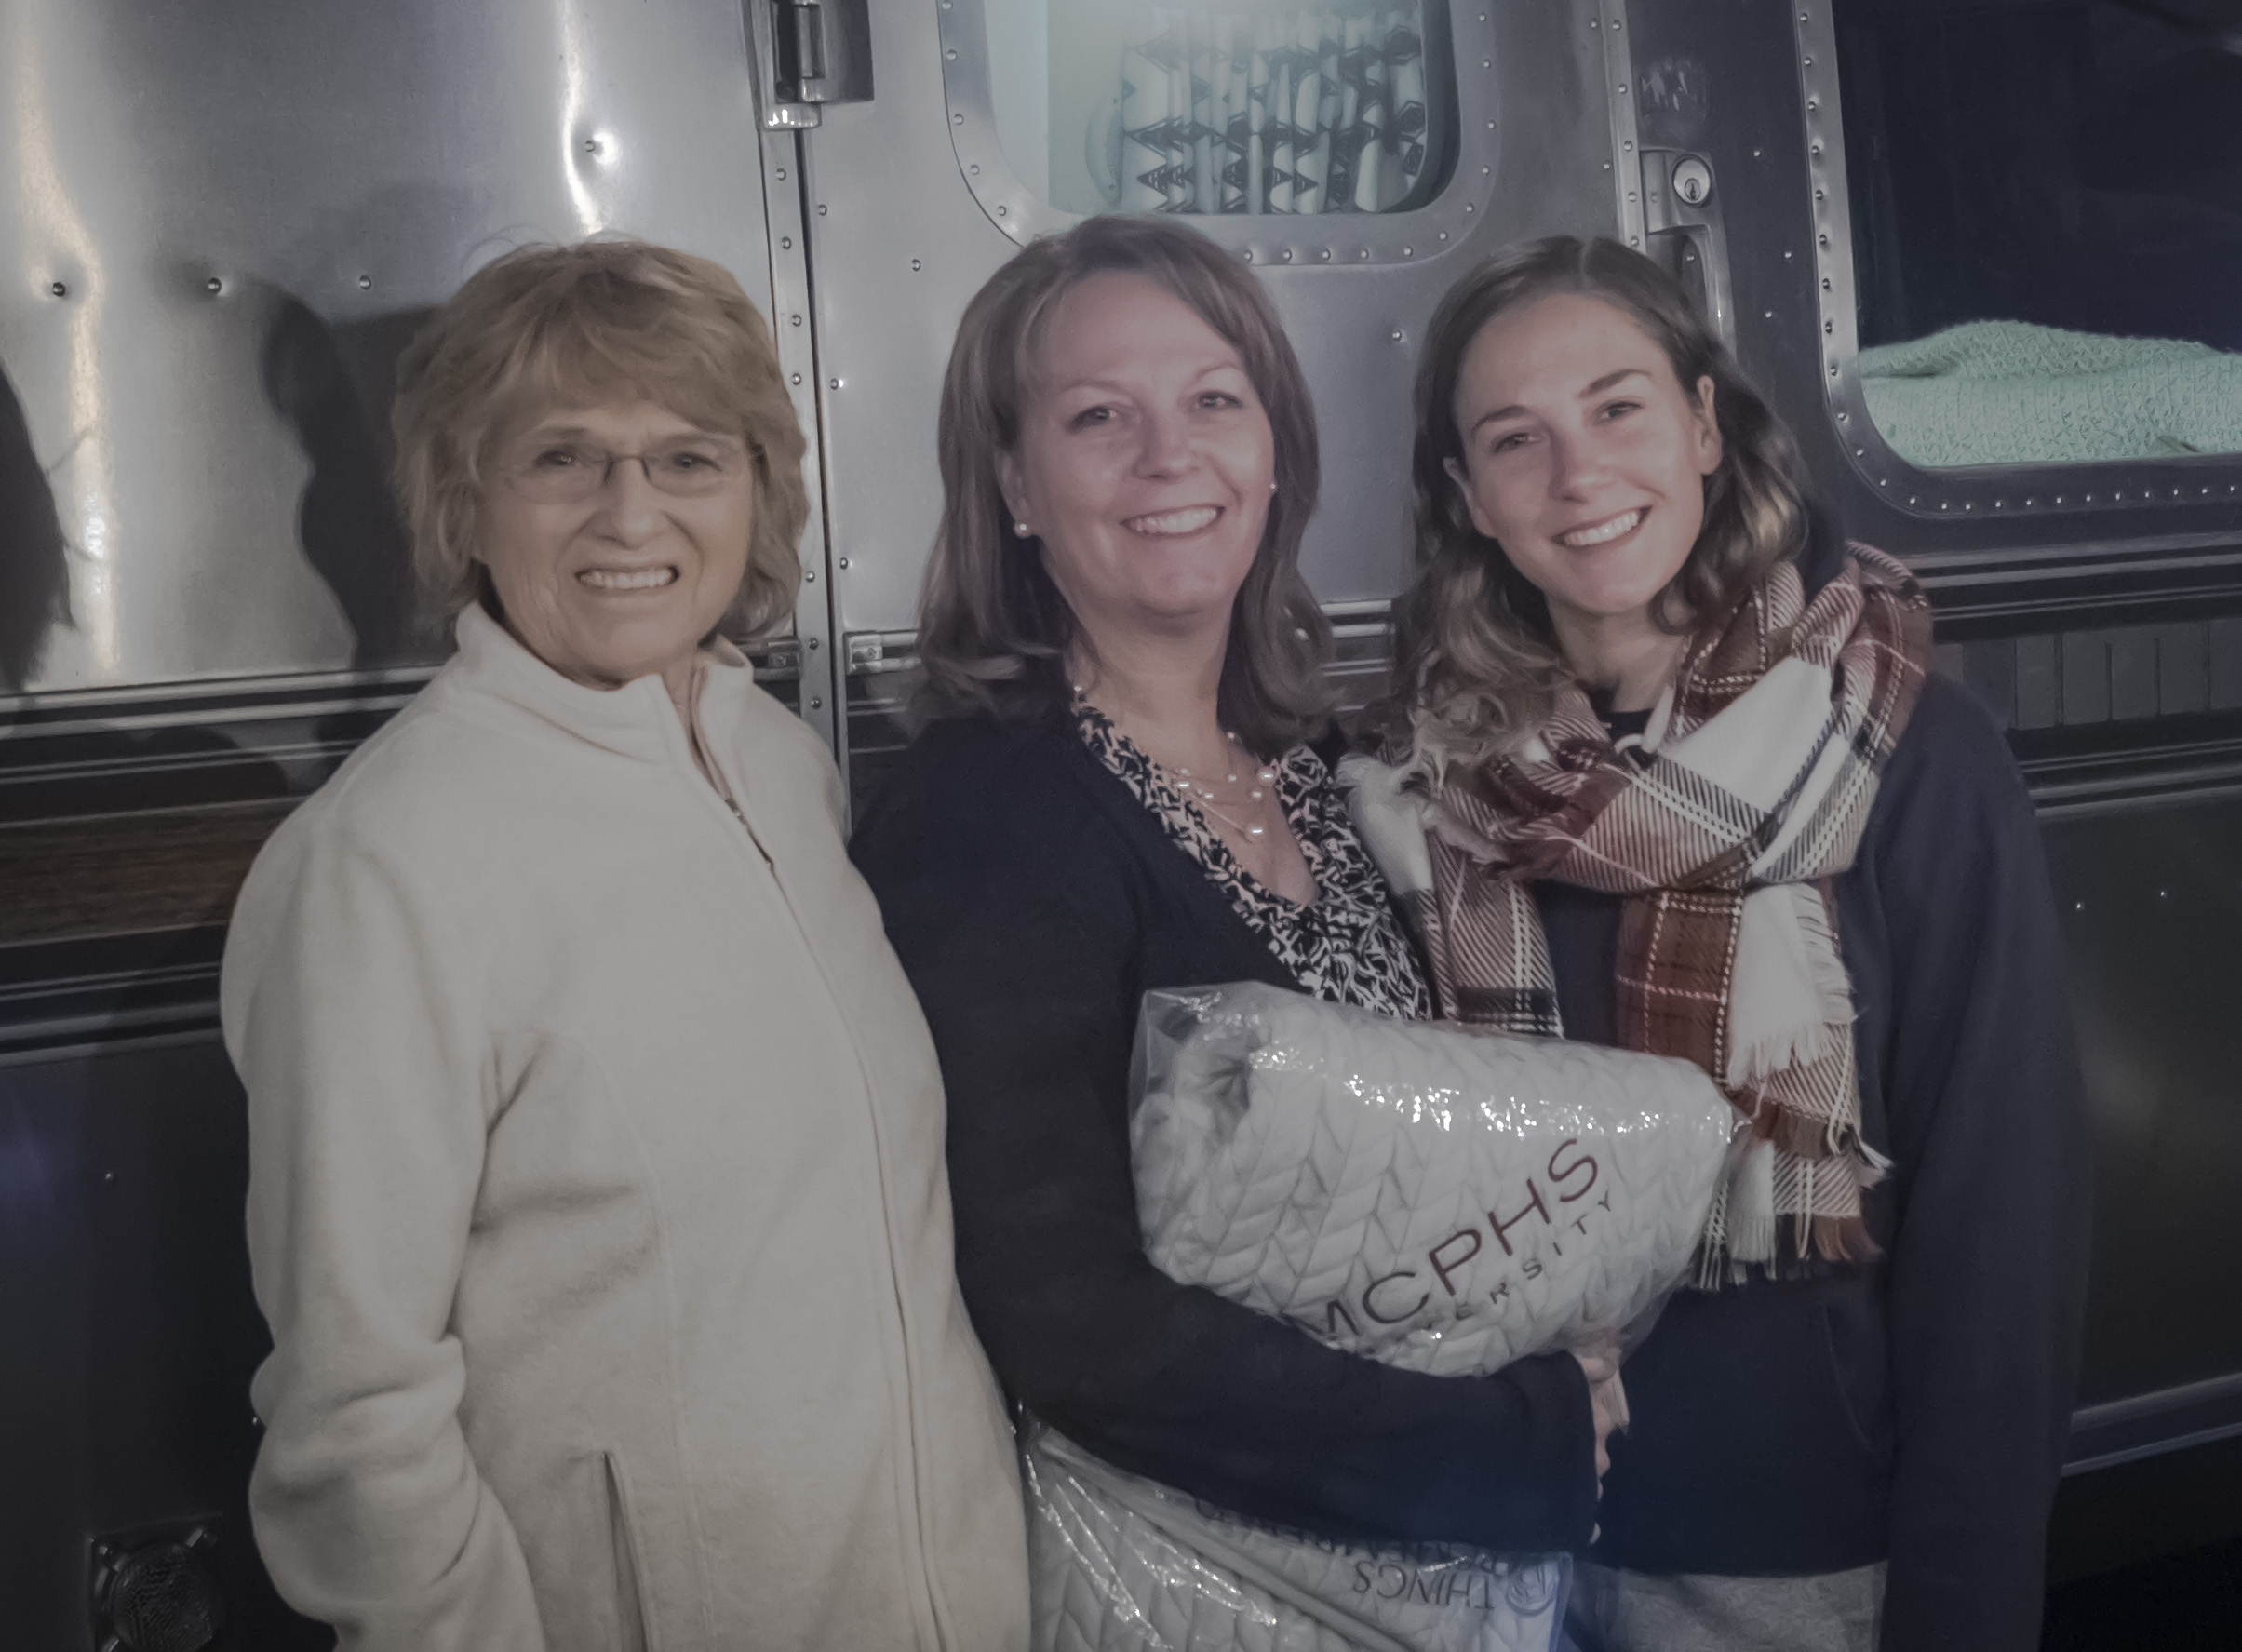 Litchfield, NH with Gram Cracka and Auntie Dawna | November 2017